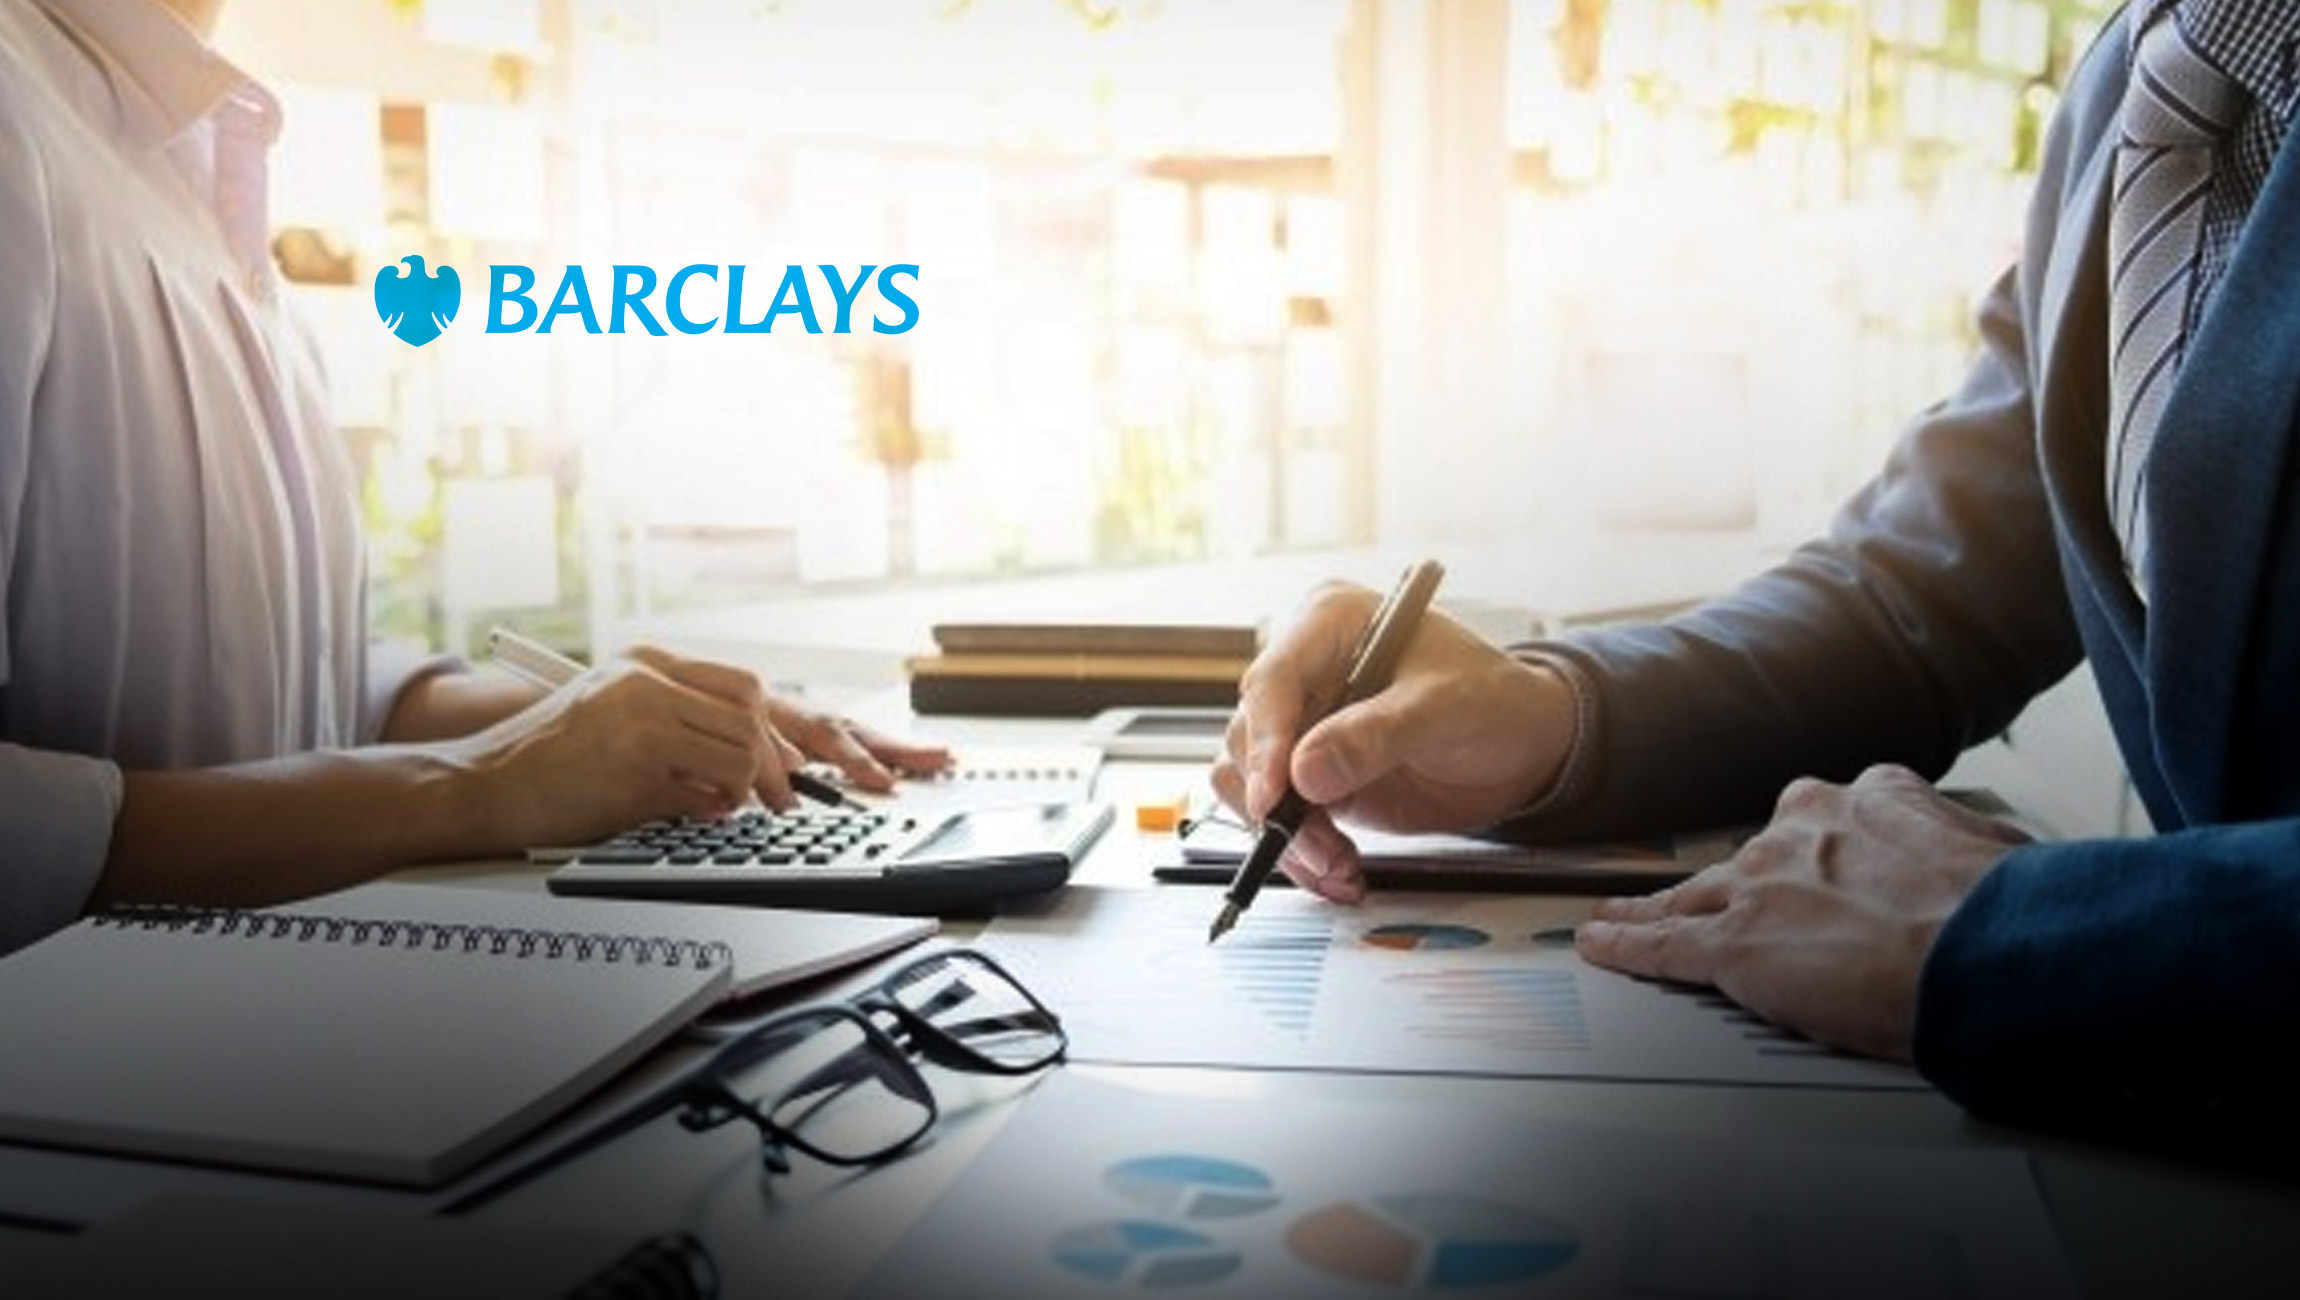 Barclays Launches Dedicated Start-Up Accelerator for Black Founders